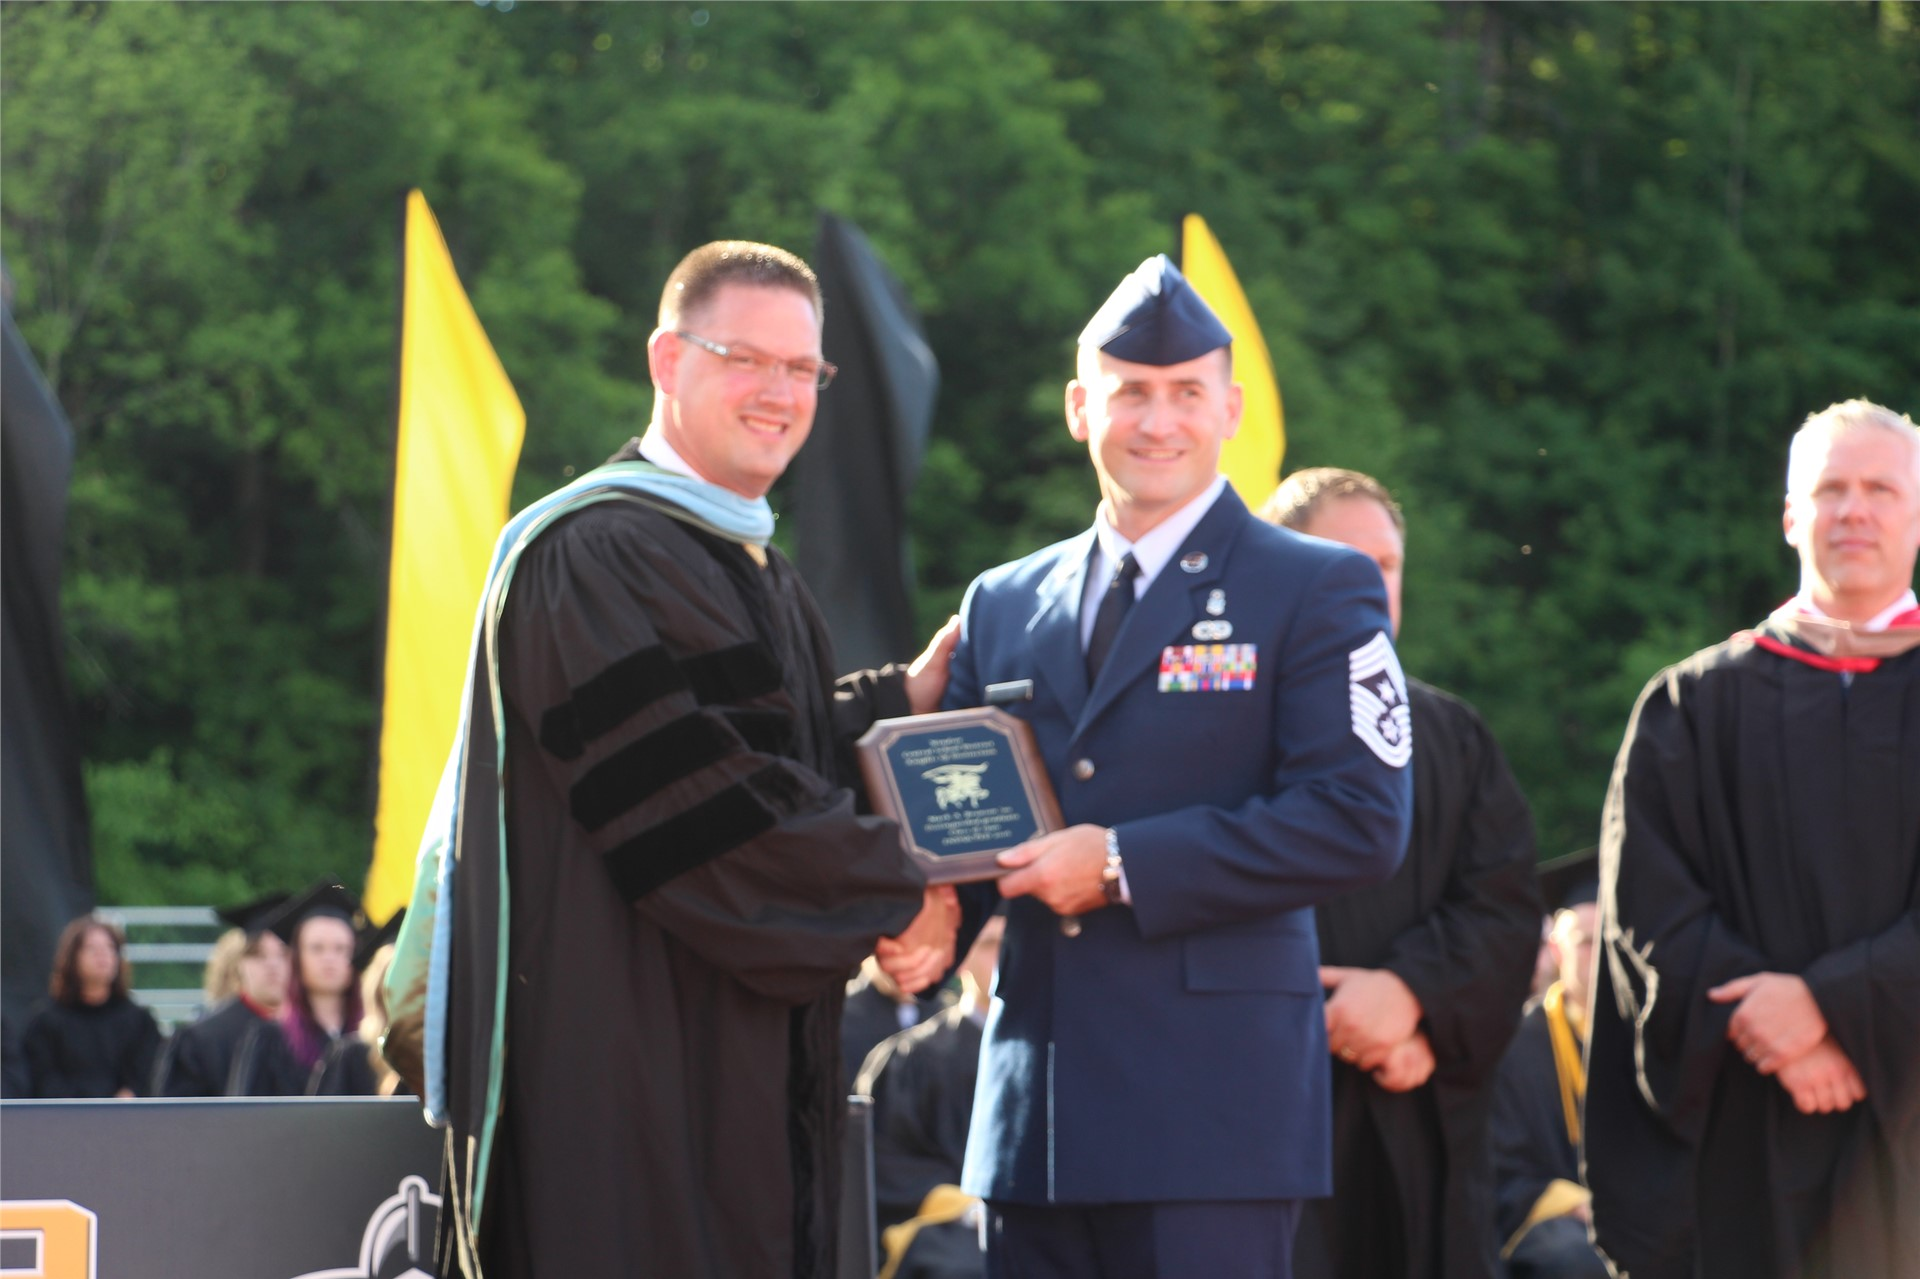 Chief Master Sergeant Mark A. Brown '90